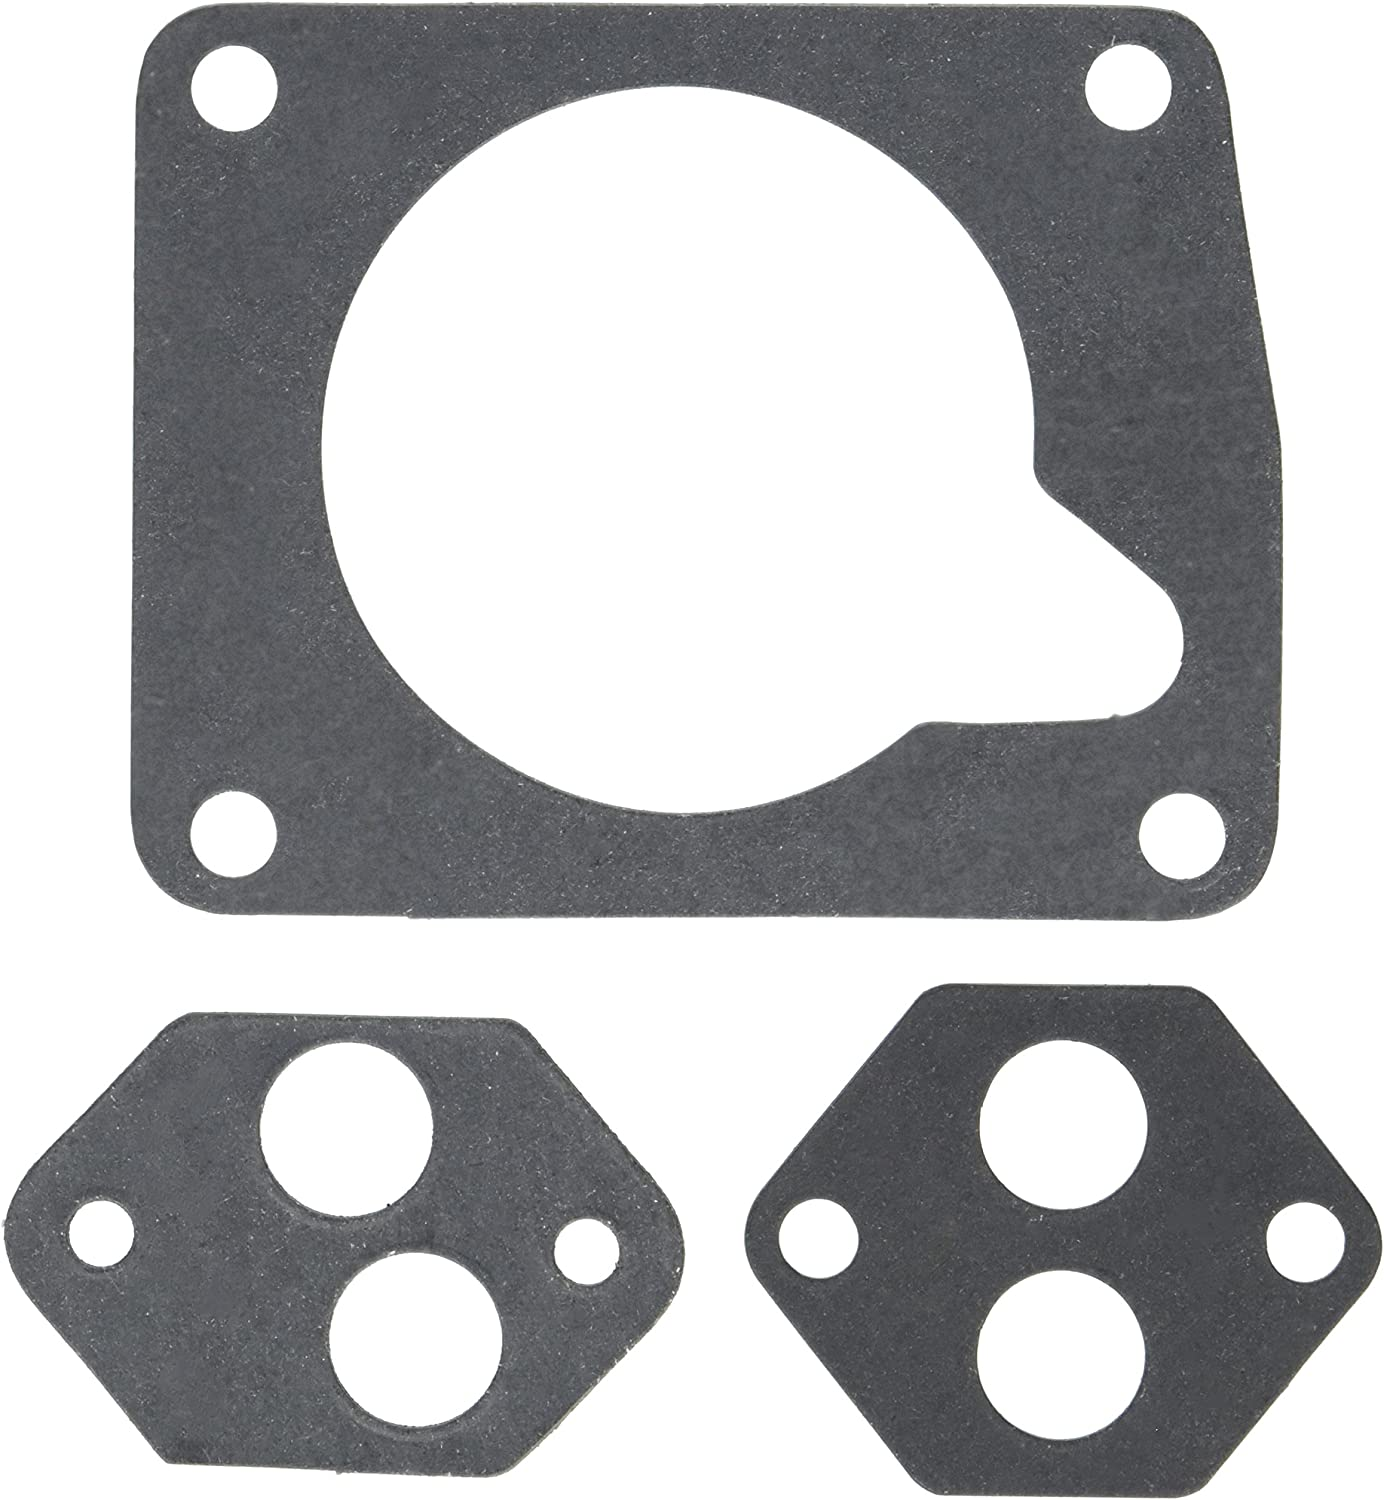 Professional Products 69401 Throttle Body Gasket Kit